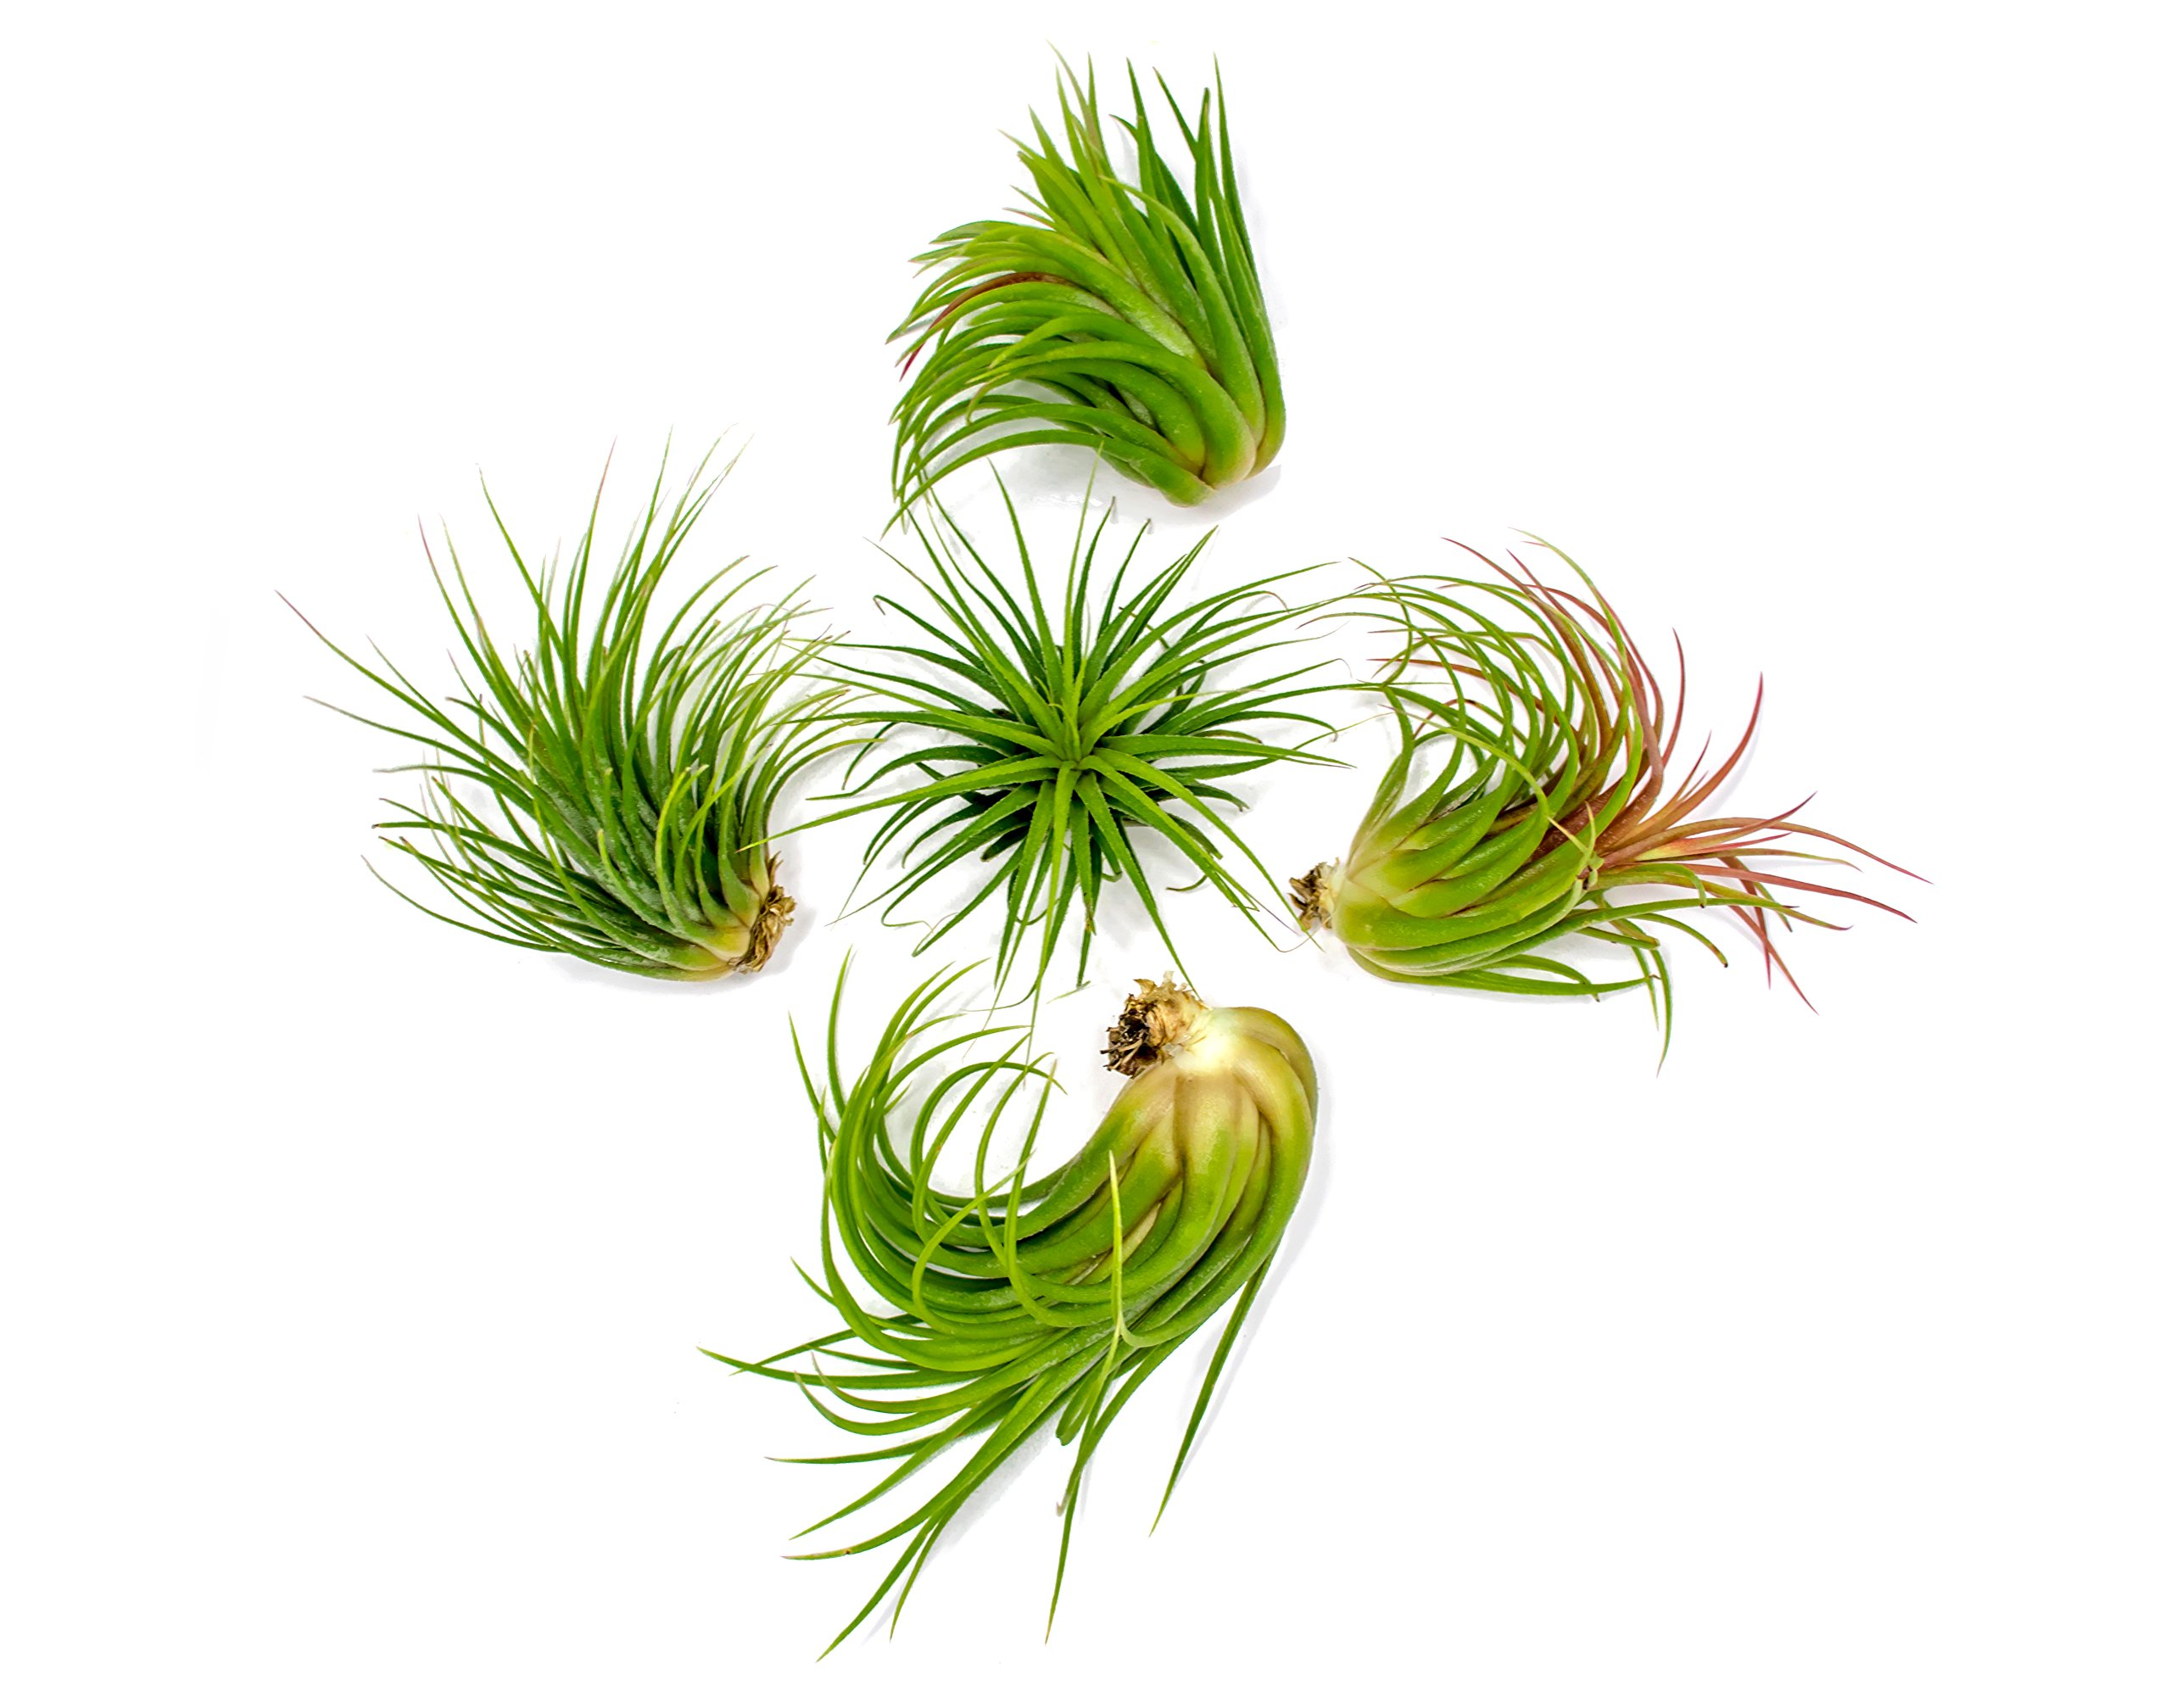 5 Ionantha Tillandsia Air Plant Pack, Each 2 to 3.5 Inches Long, Live Tropical House Plants for Home Decor, Indoor Terrarium Air Plants